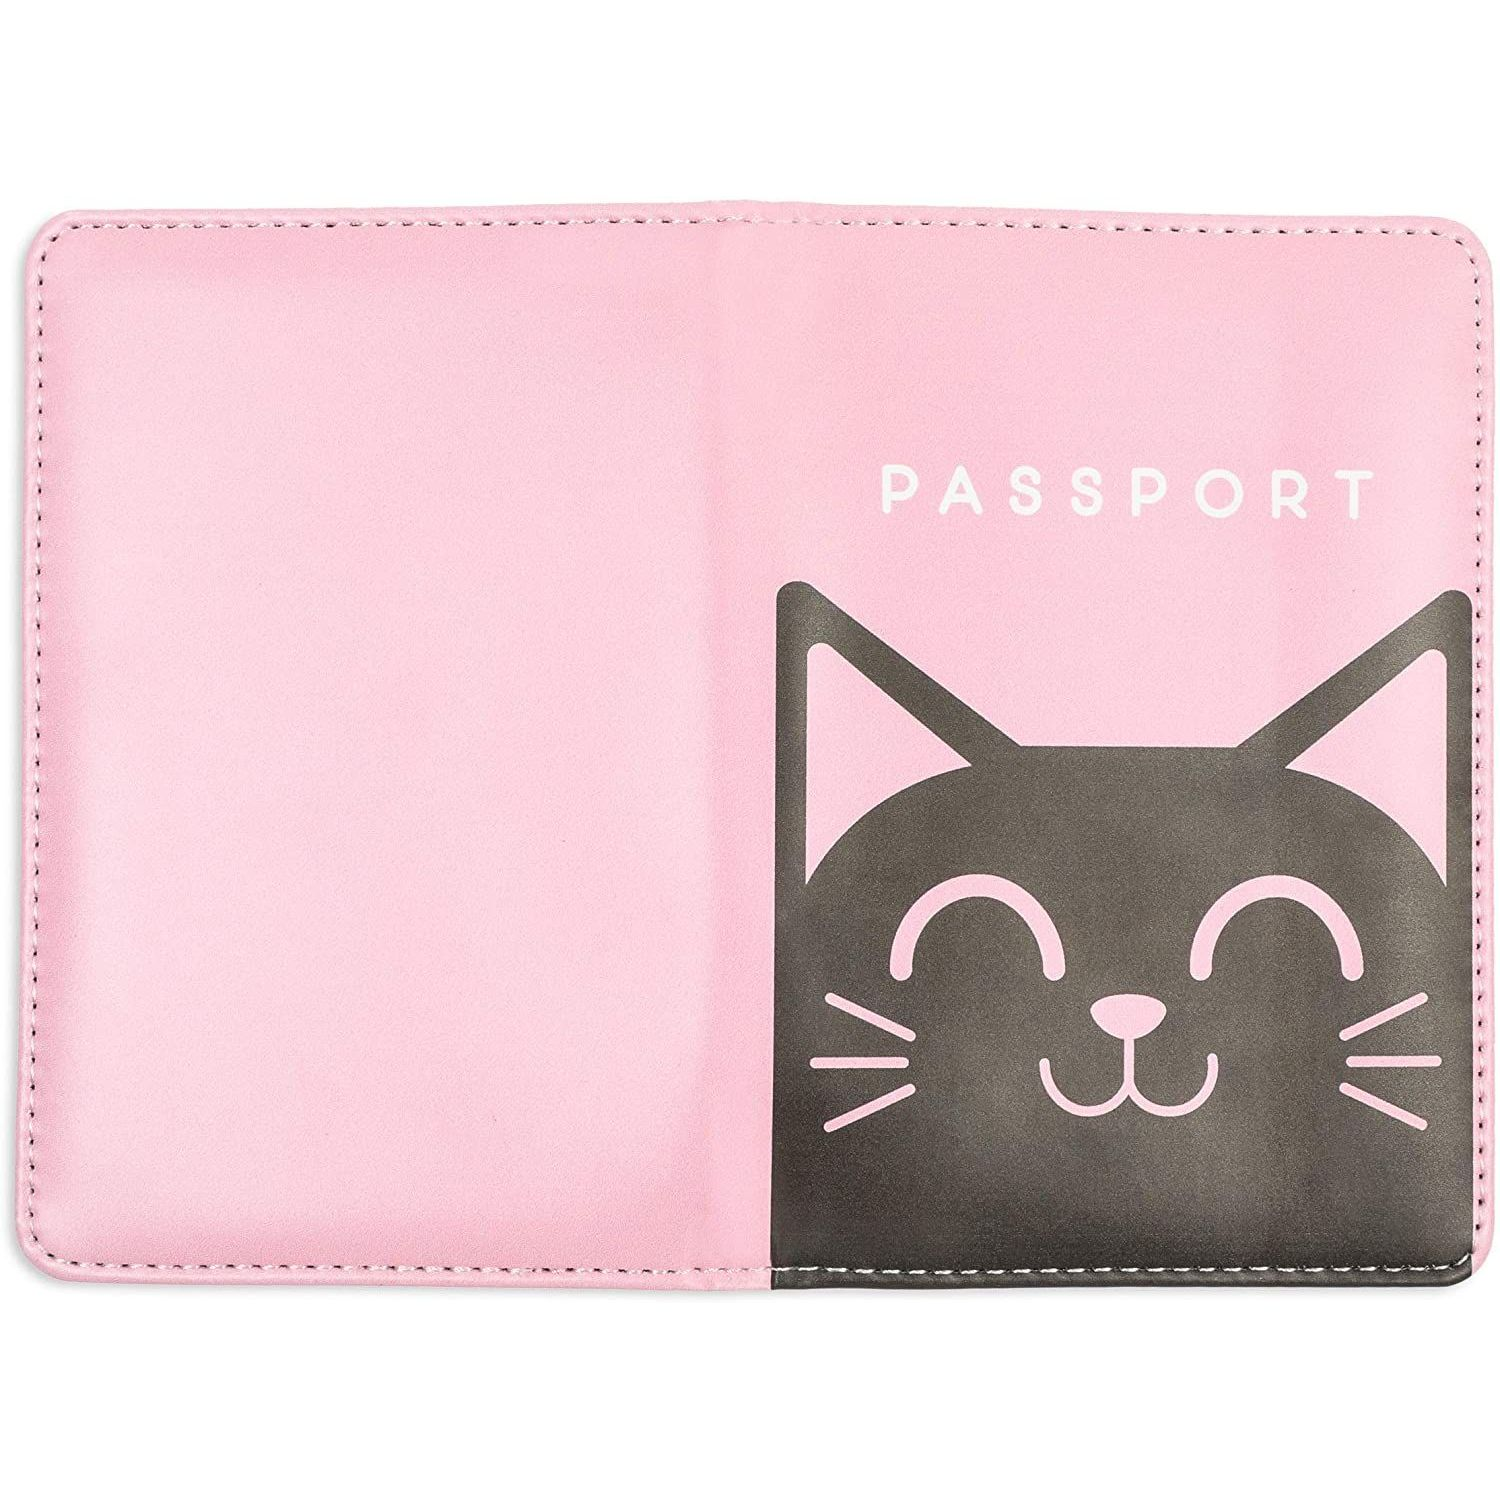 UNICEU Fashion Travel Passport Holder Pouch Cover Case Wallets Cute Animal Owl Printed for Women